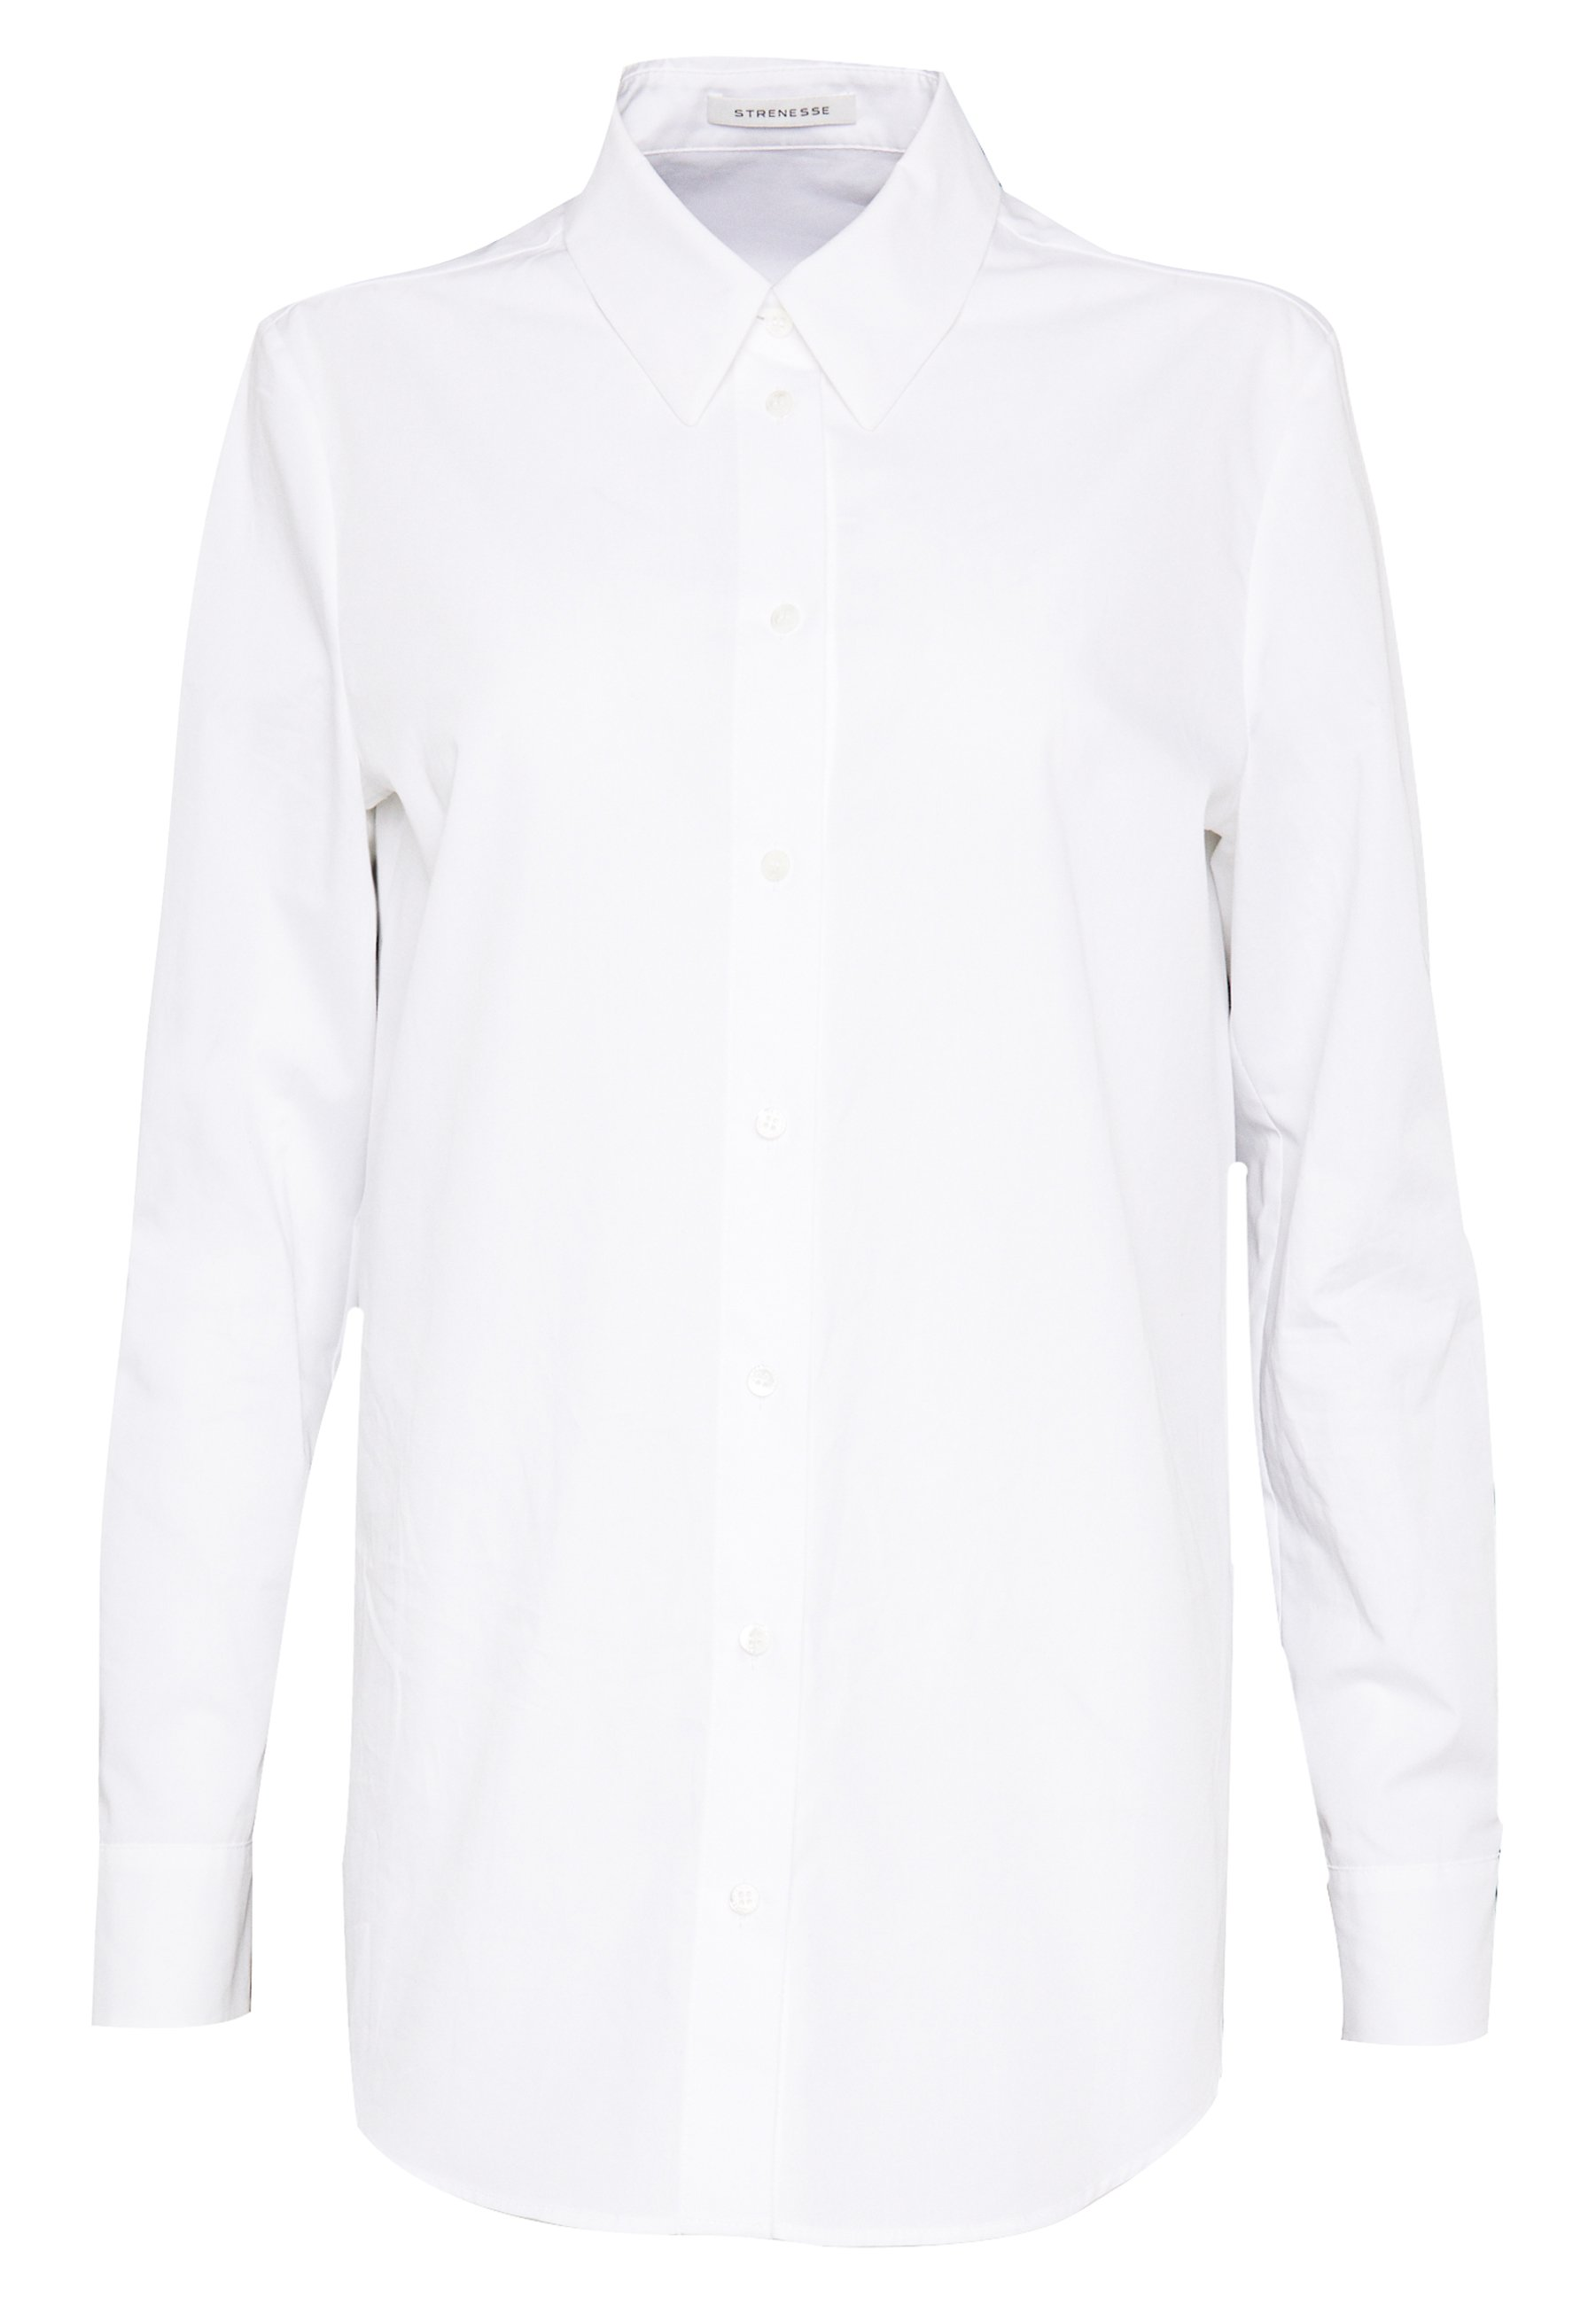 Strenesse Blouse - Overhemdblouse Optic White QPg8SFF